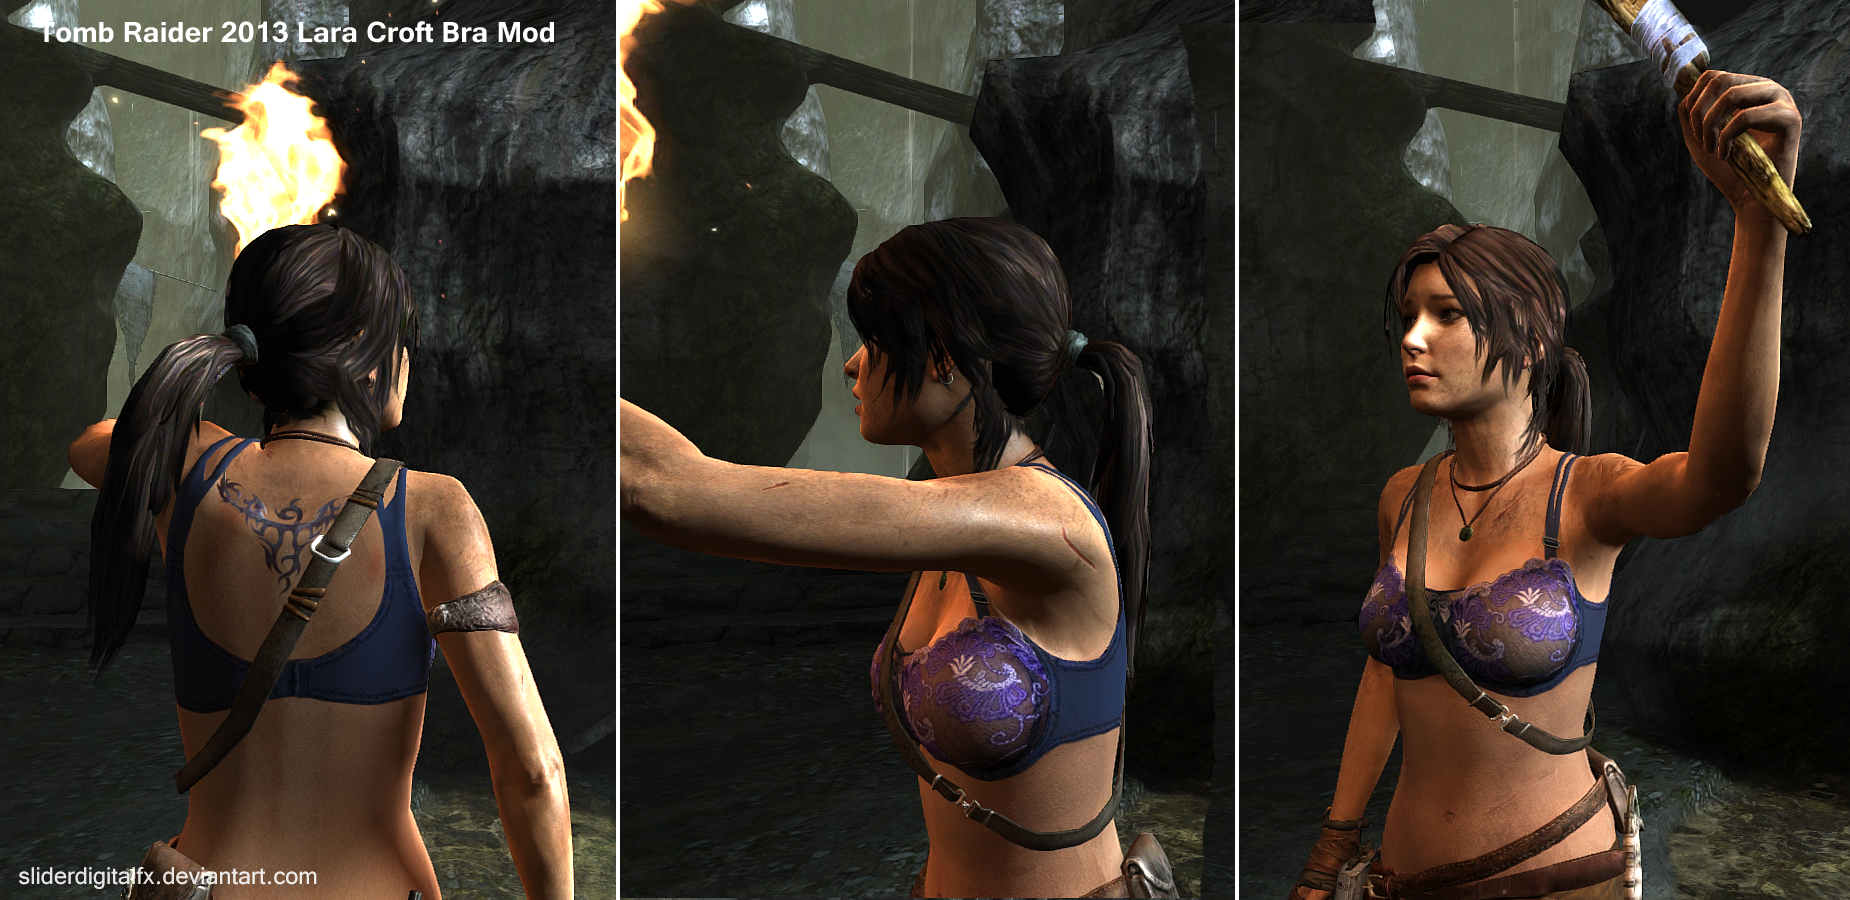 Tomb raider inframundo big boobs mod